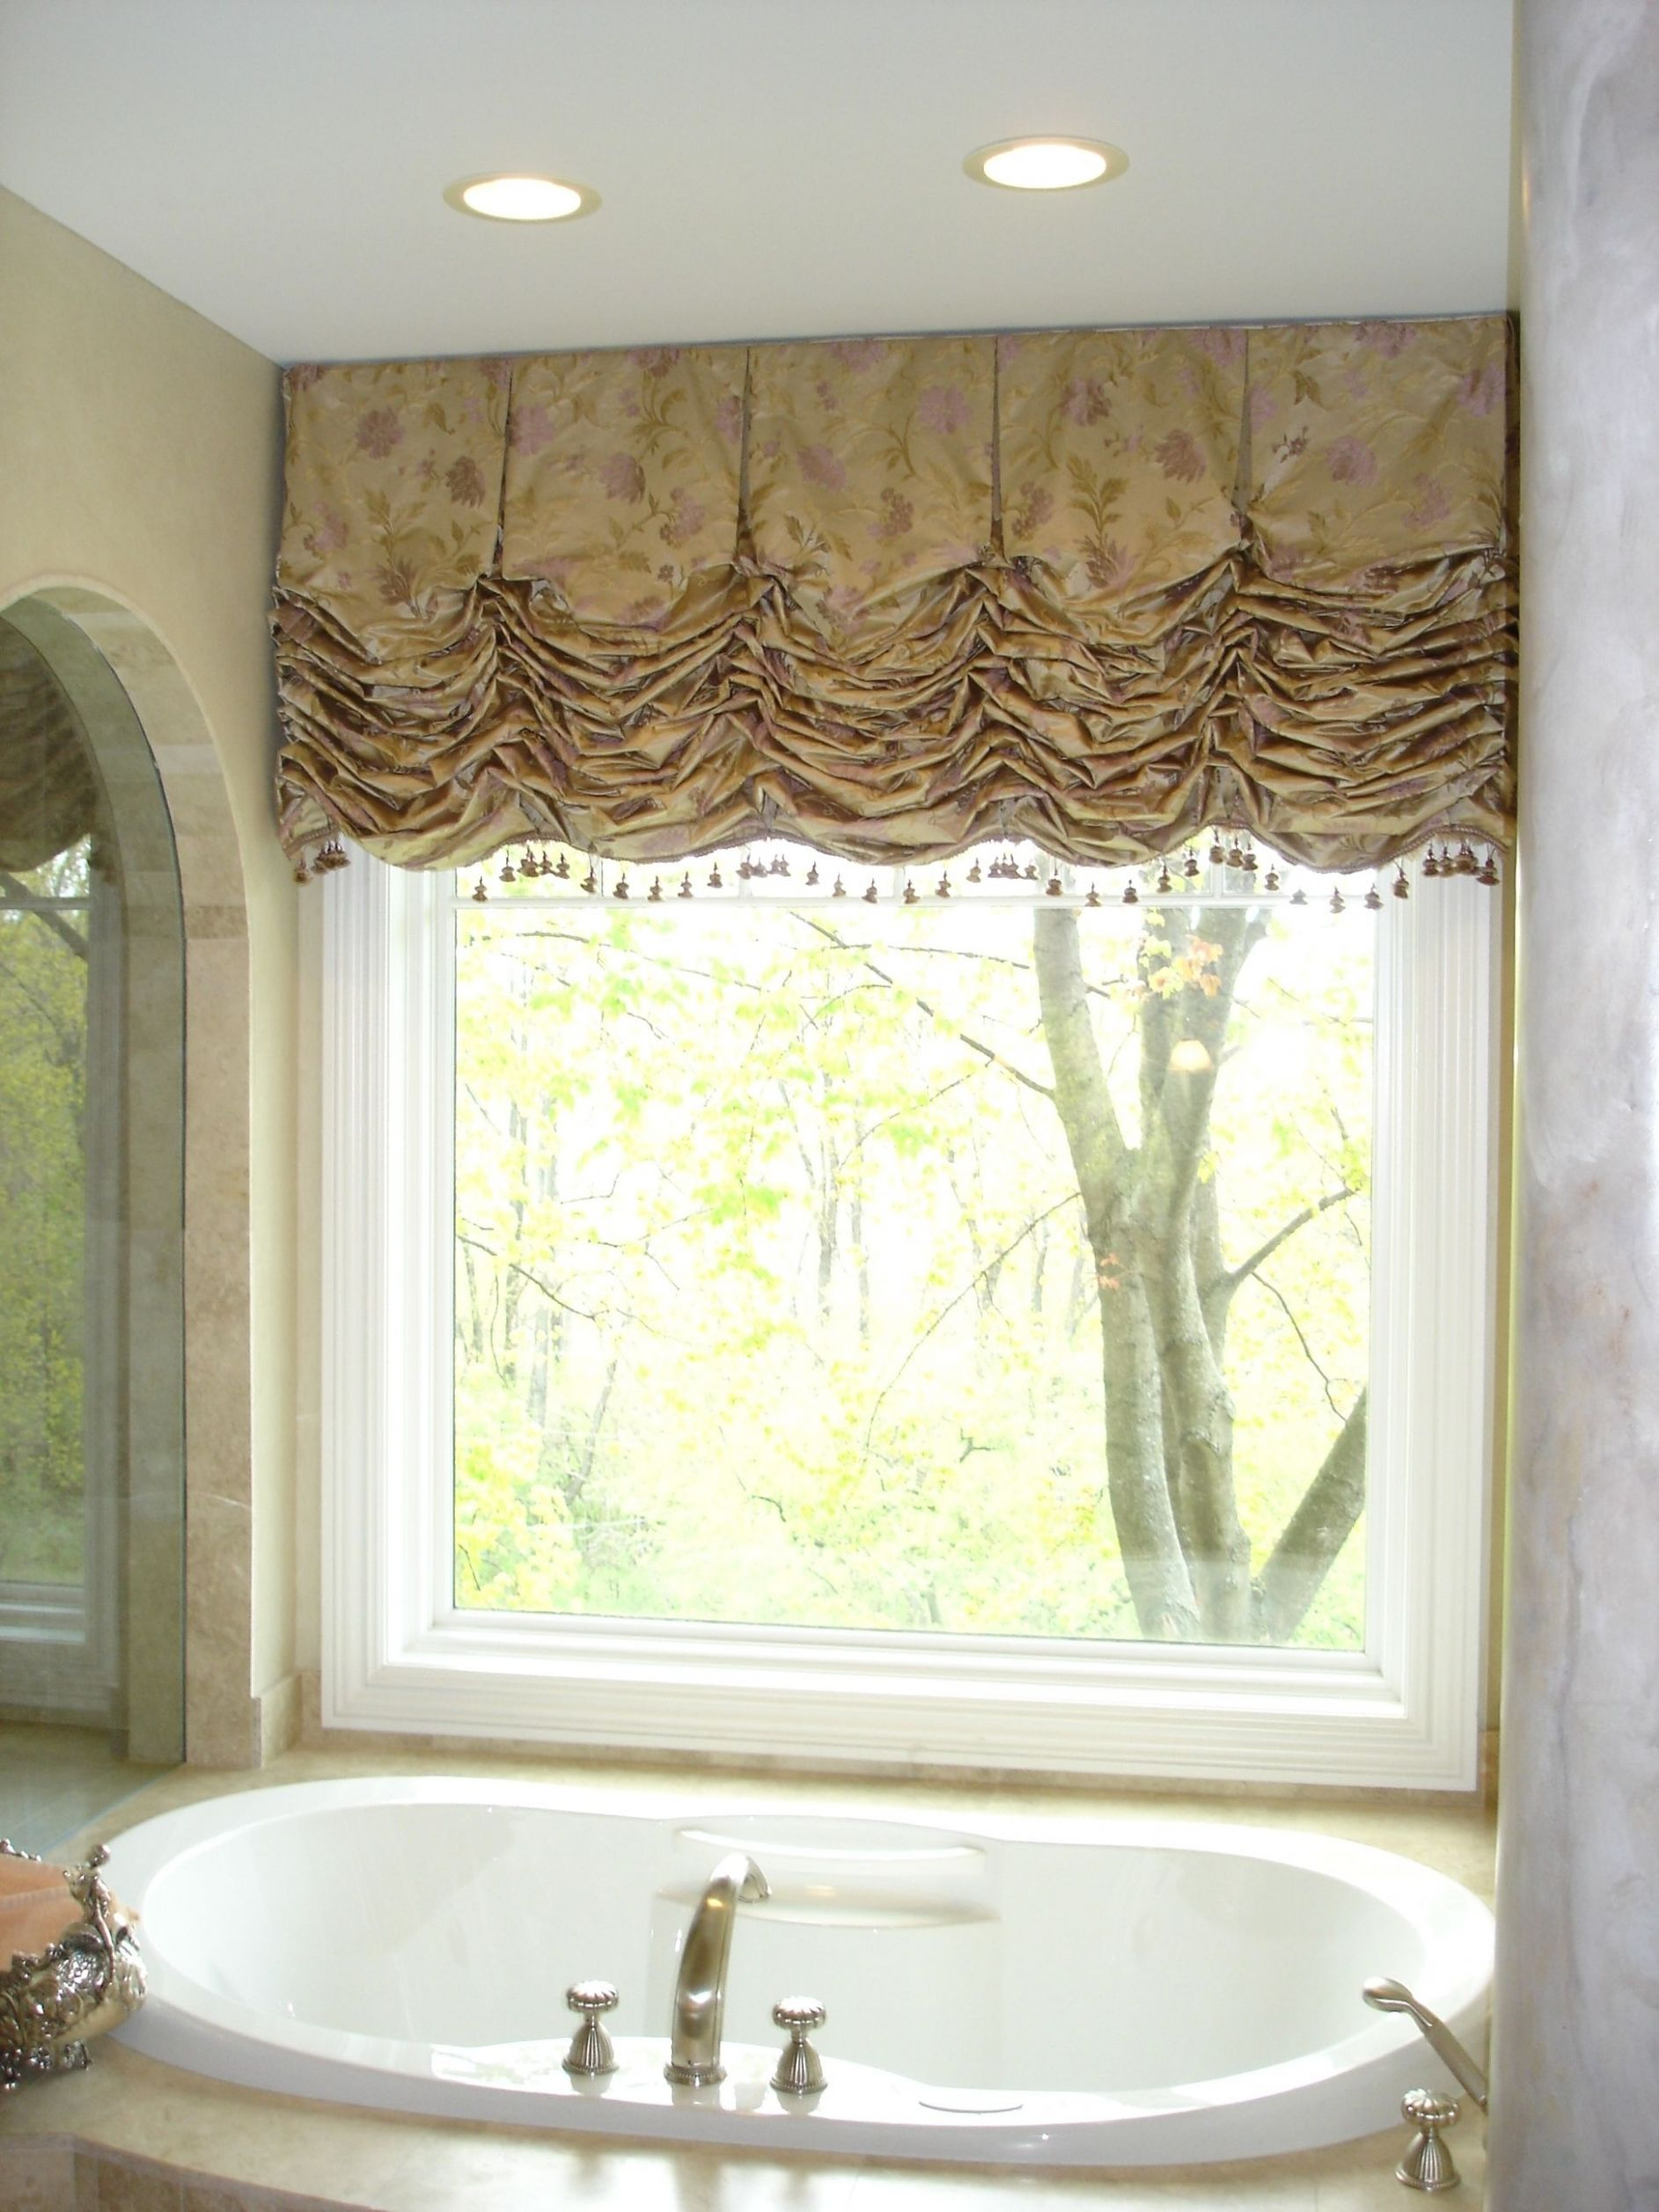 Style and elegance. (With images) | Bathroom valance, Bathroom ..